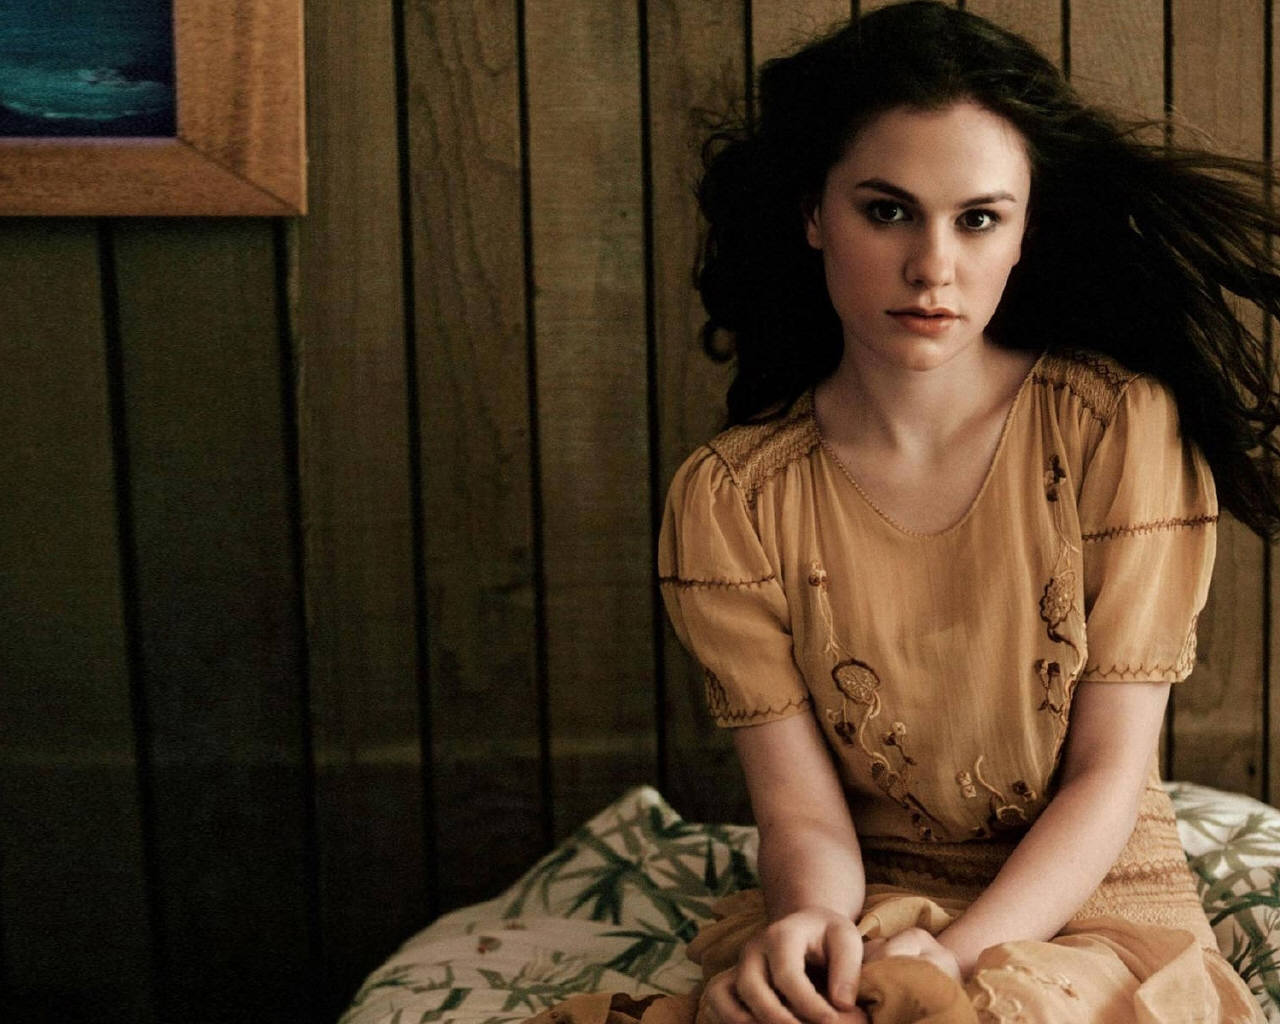 1280x1024 - Anna Paquin Wallpapers 33